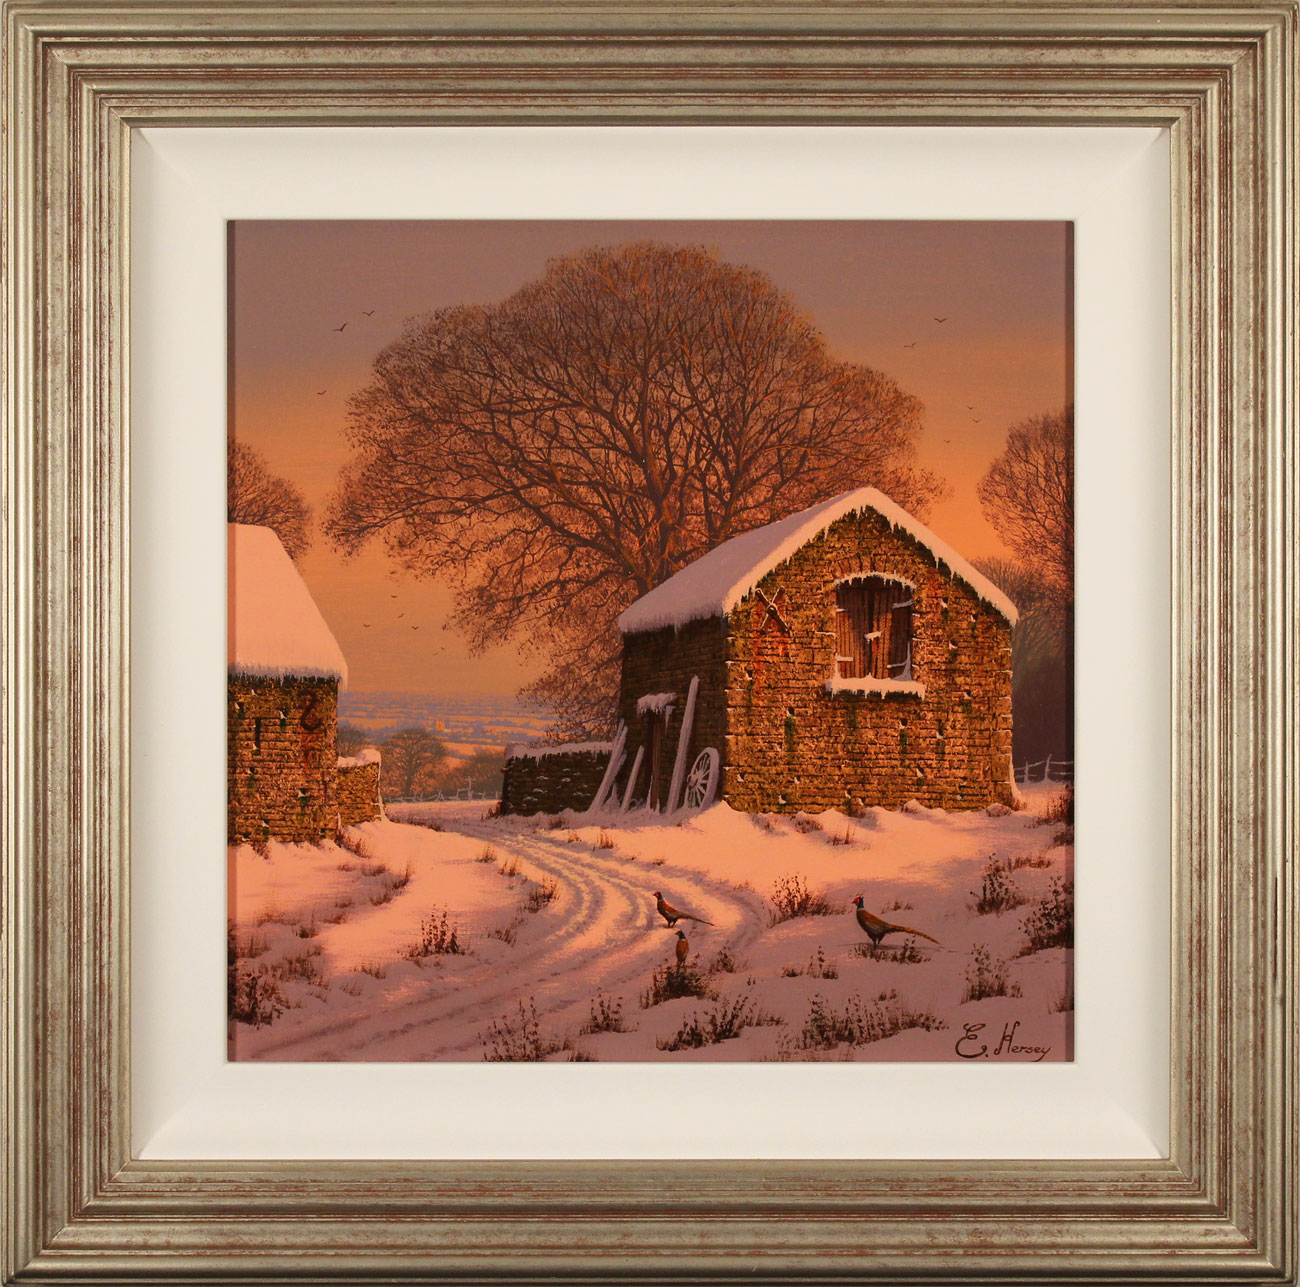 Edward Hersey, Original oil painting on canvas, Winter's Calm. Click to enlarge